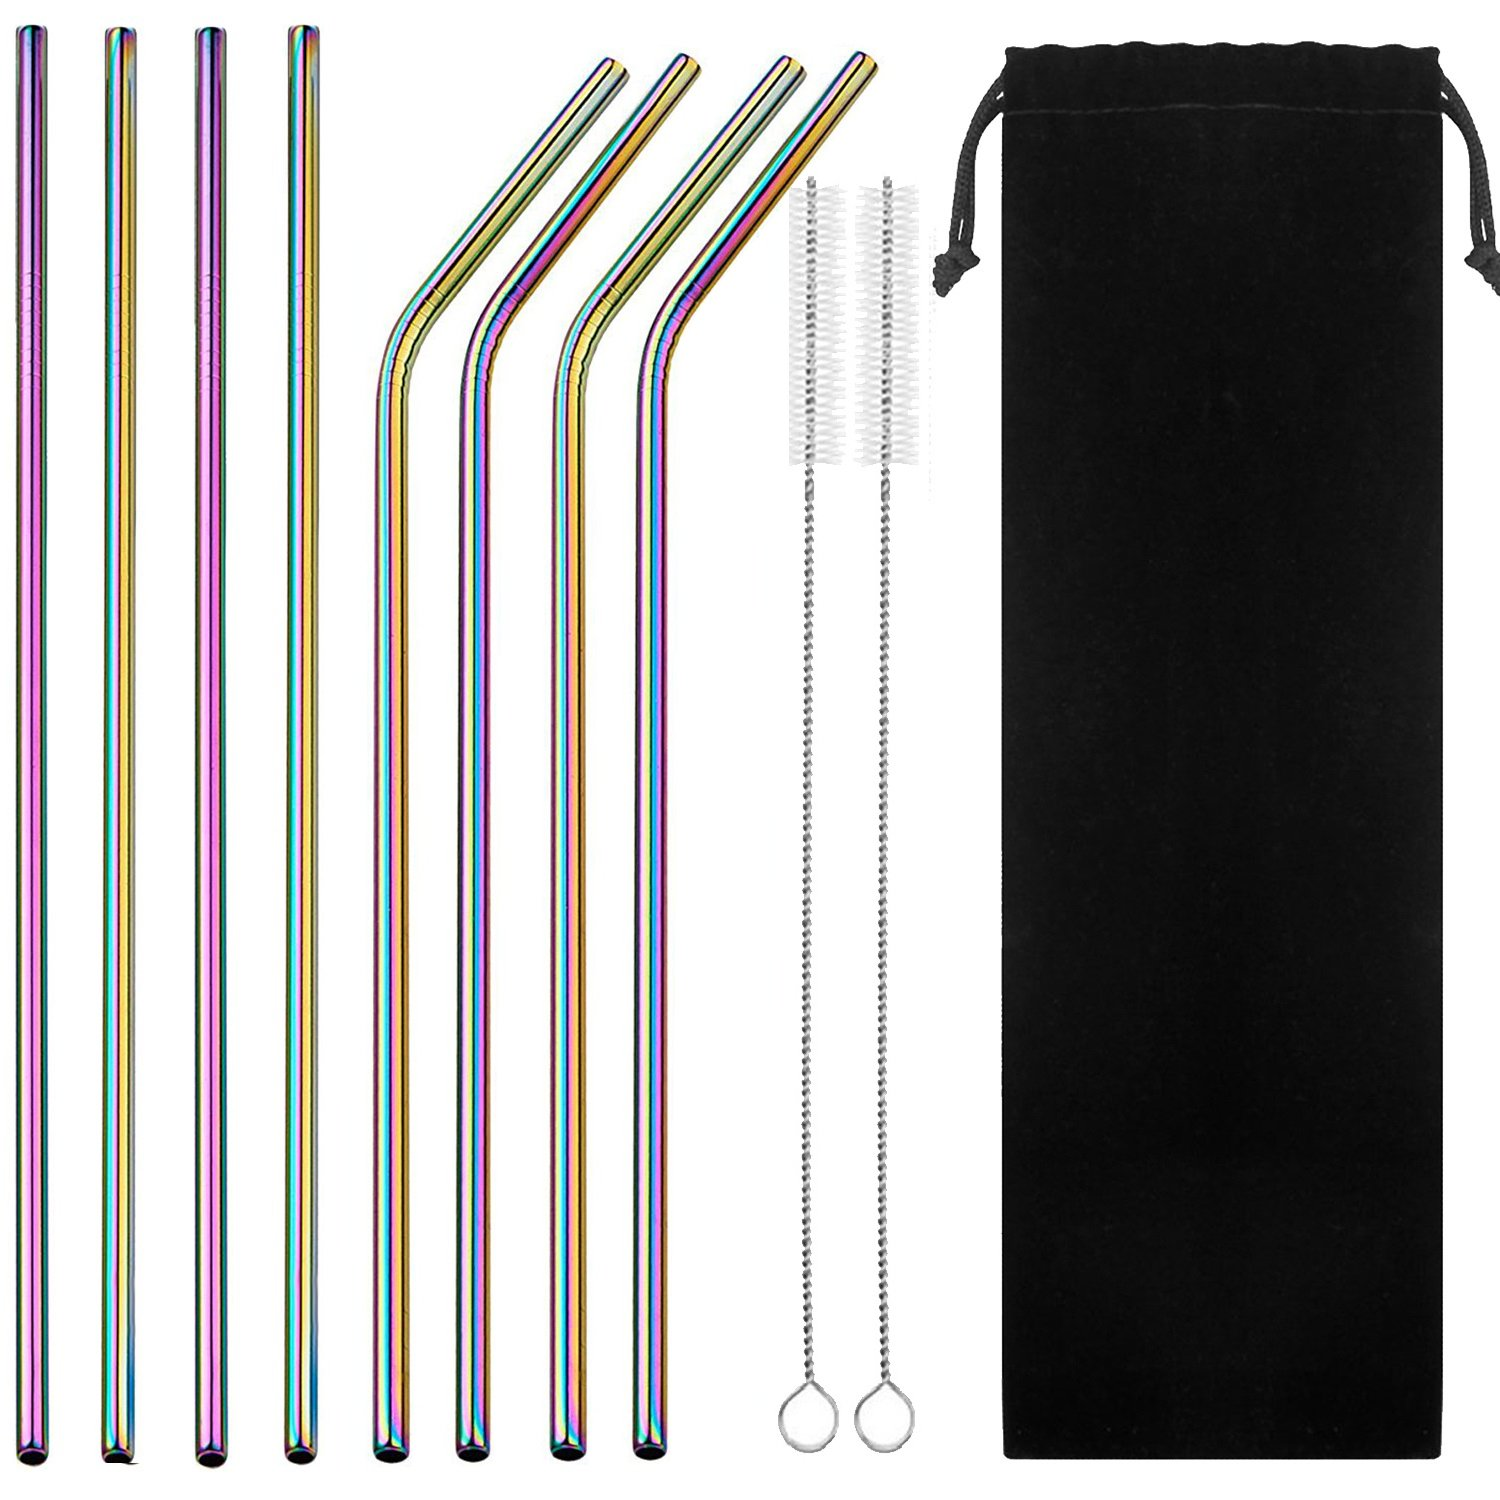 VEHHE Stainless Steel Straws 10.5'' Drinking Straws Metal Straws Reusable 8 Set - Ultra Long Rainbow Color-Cleaning Brush for 20/30 Oz for Yeti RTIC SIC Ozark Trail Tumblers (4 Straight|4 Bent|2 Brush) by VEHHE